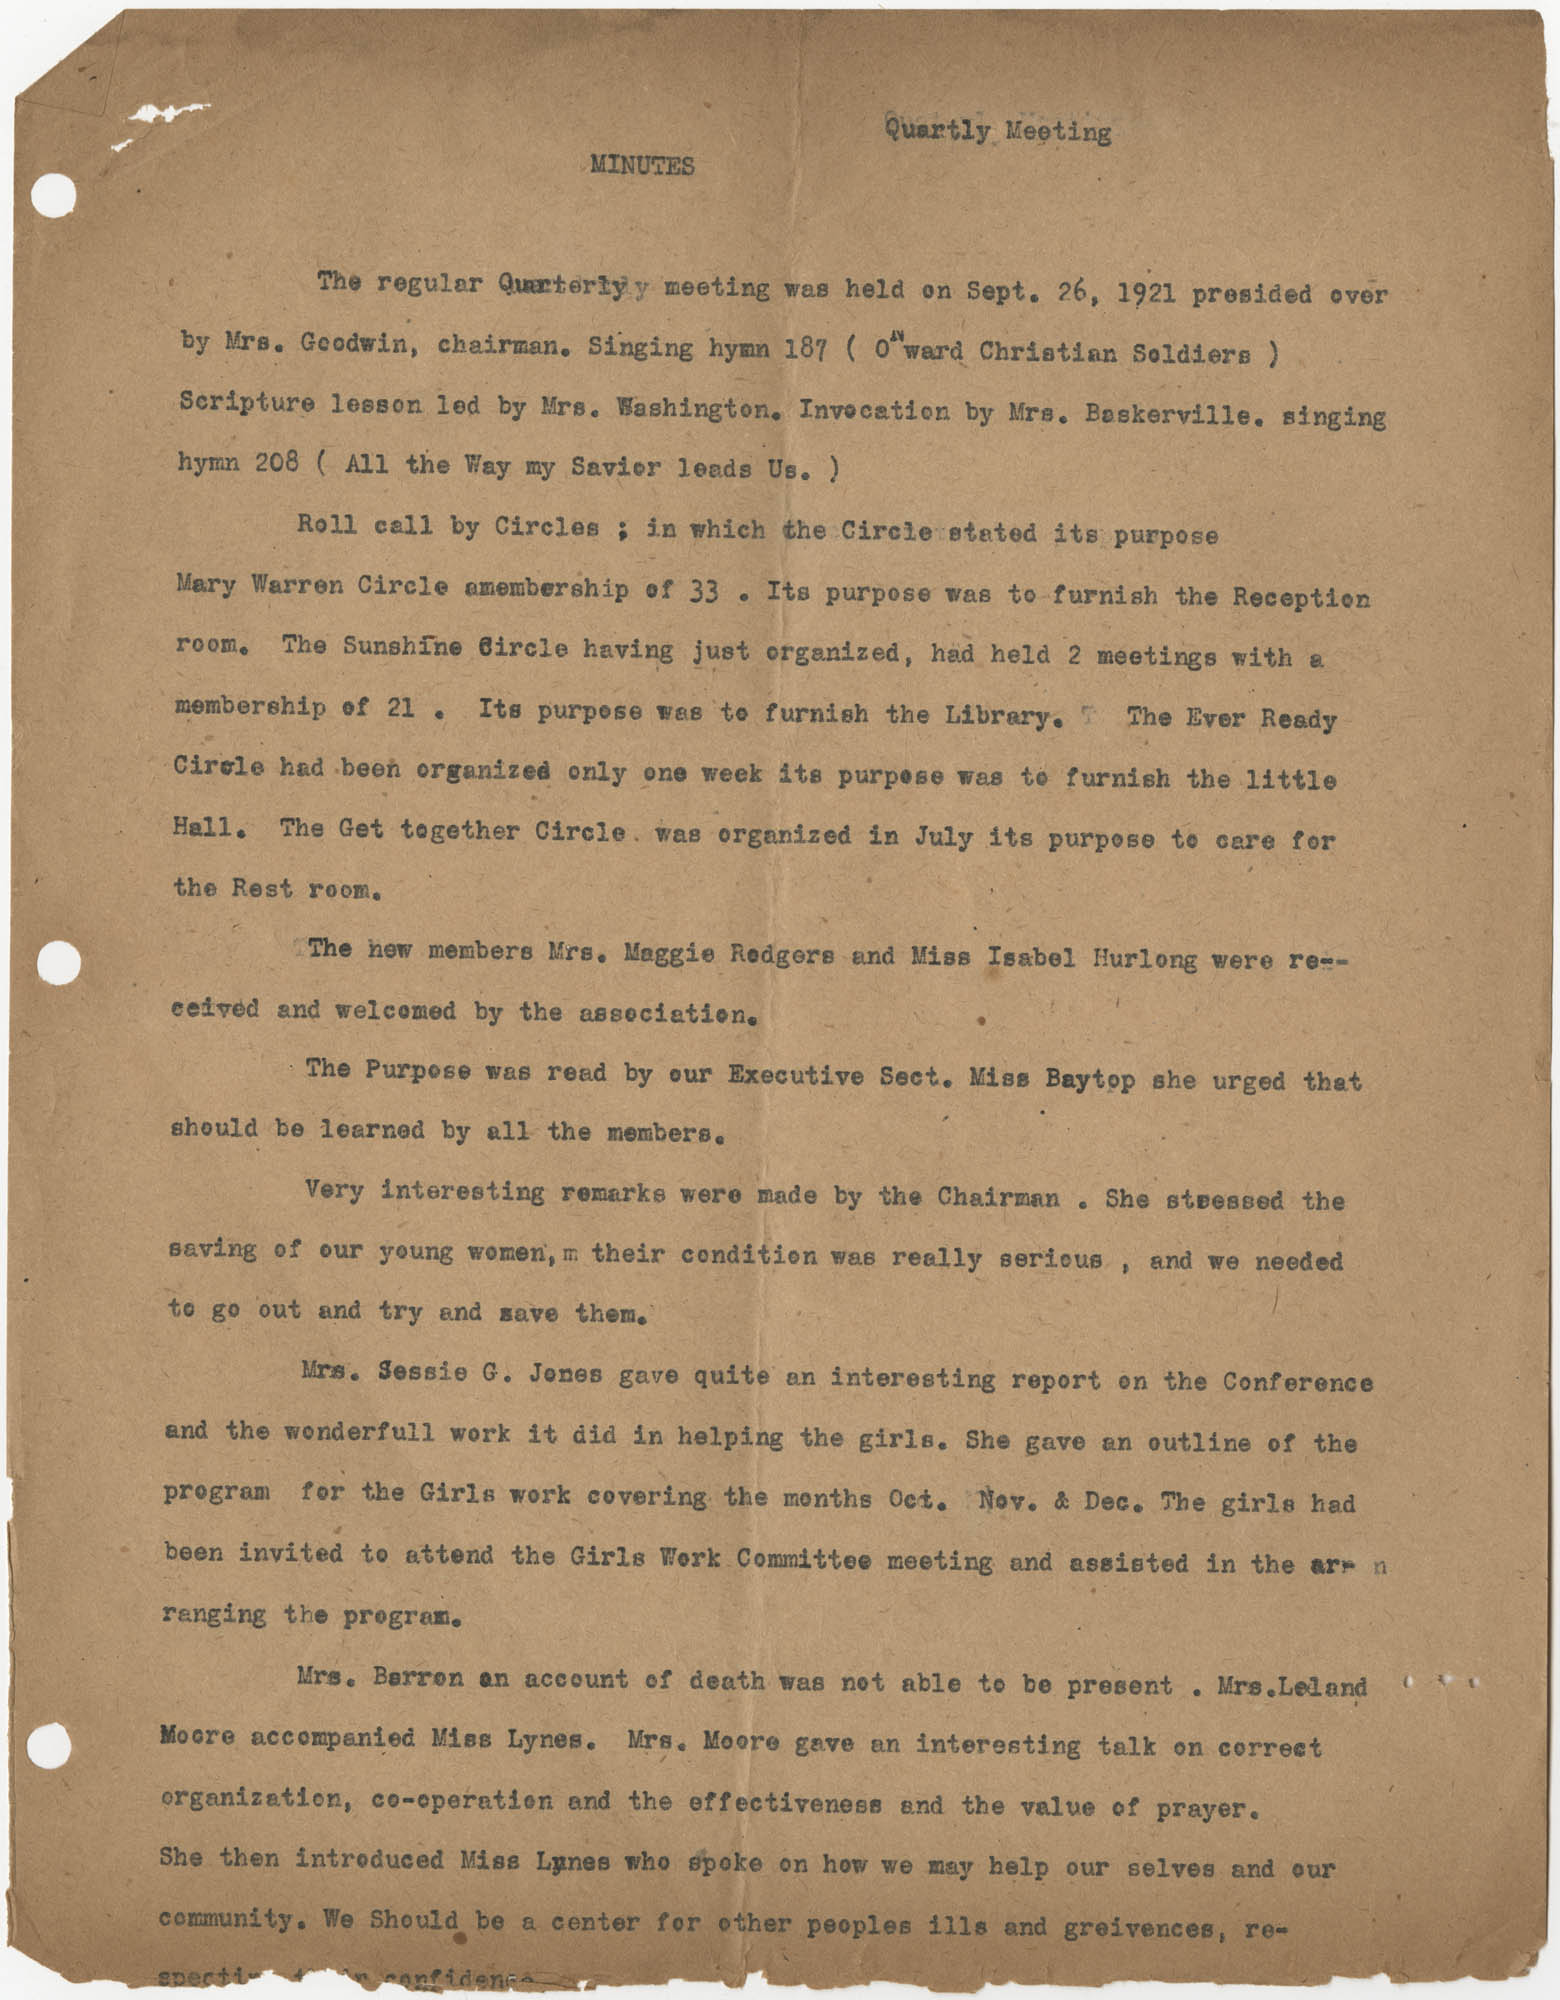 Minutes, Coming Street Y.W.C.A., September 26, 1921